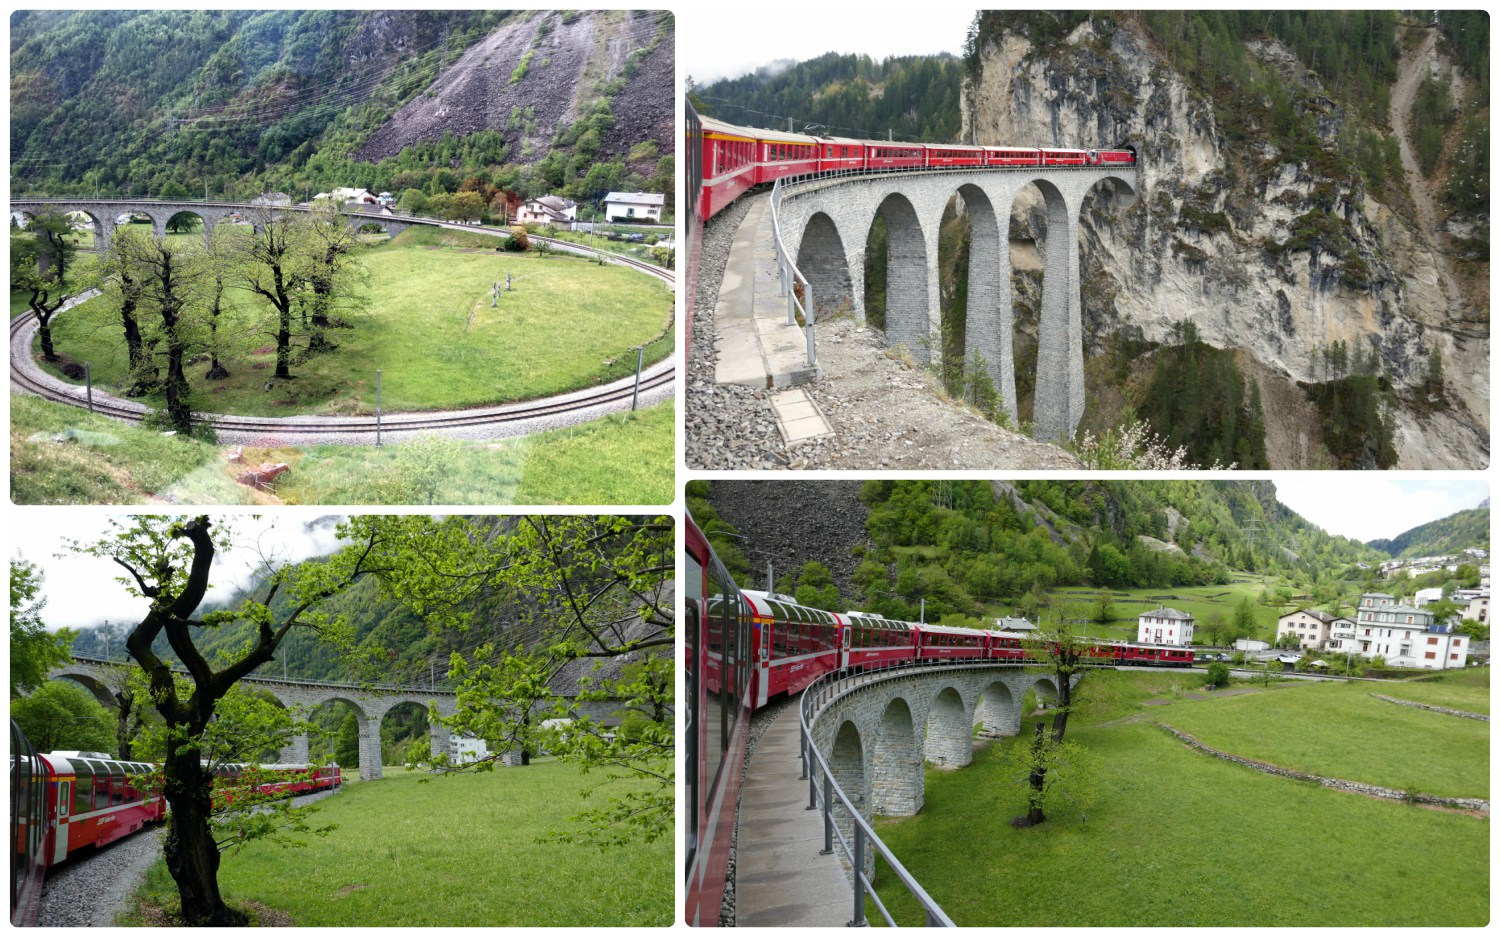 Clockwise (from the top): The full view of Brusio Circular Viaduct, crossing over the Landwasser Viaduct, going over the top of the Brusio Circular Viaduct, crossing under the Brusio Circular Viaduct